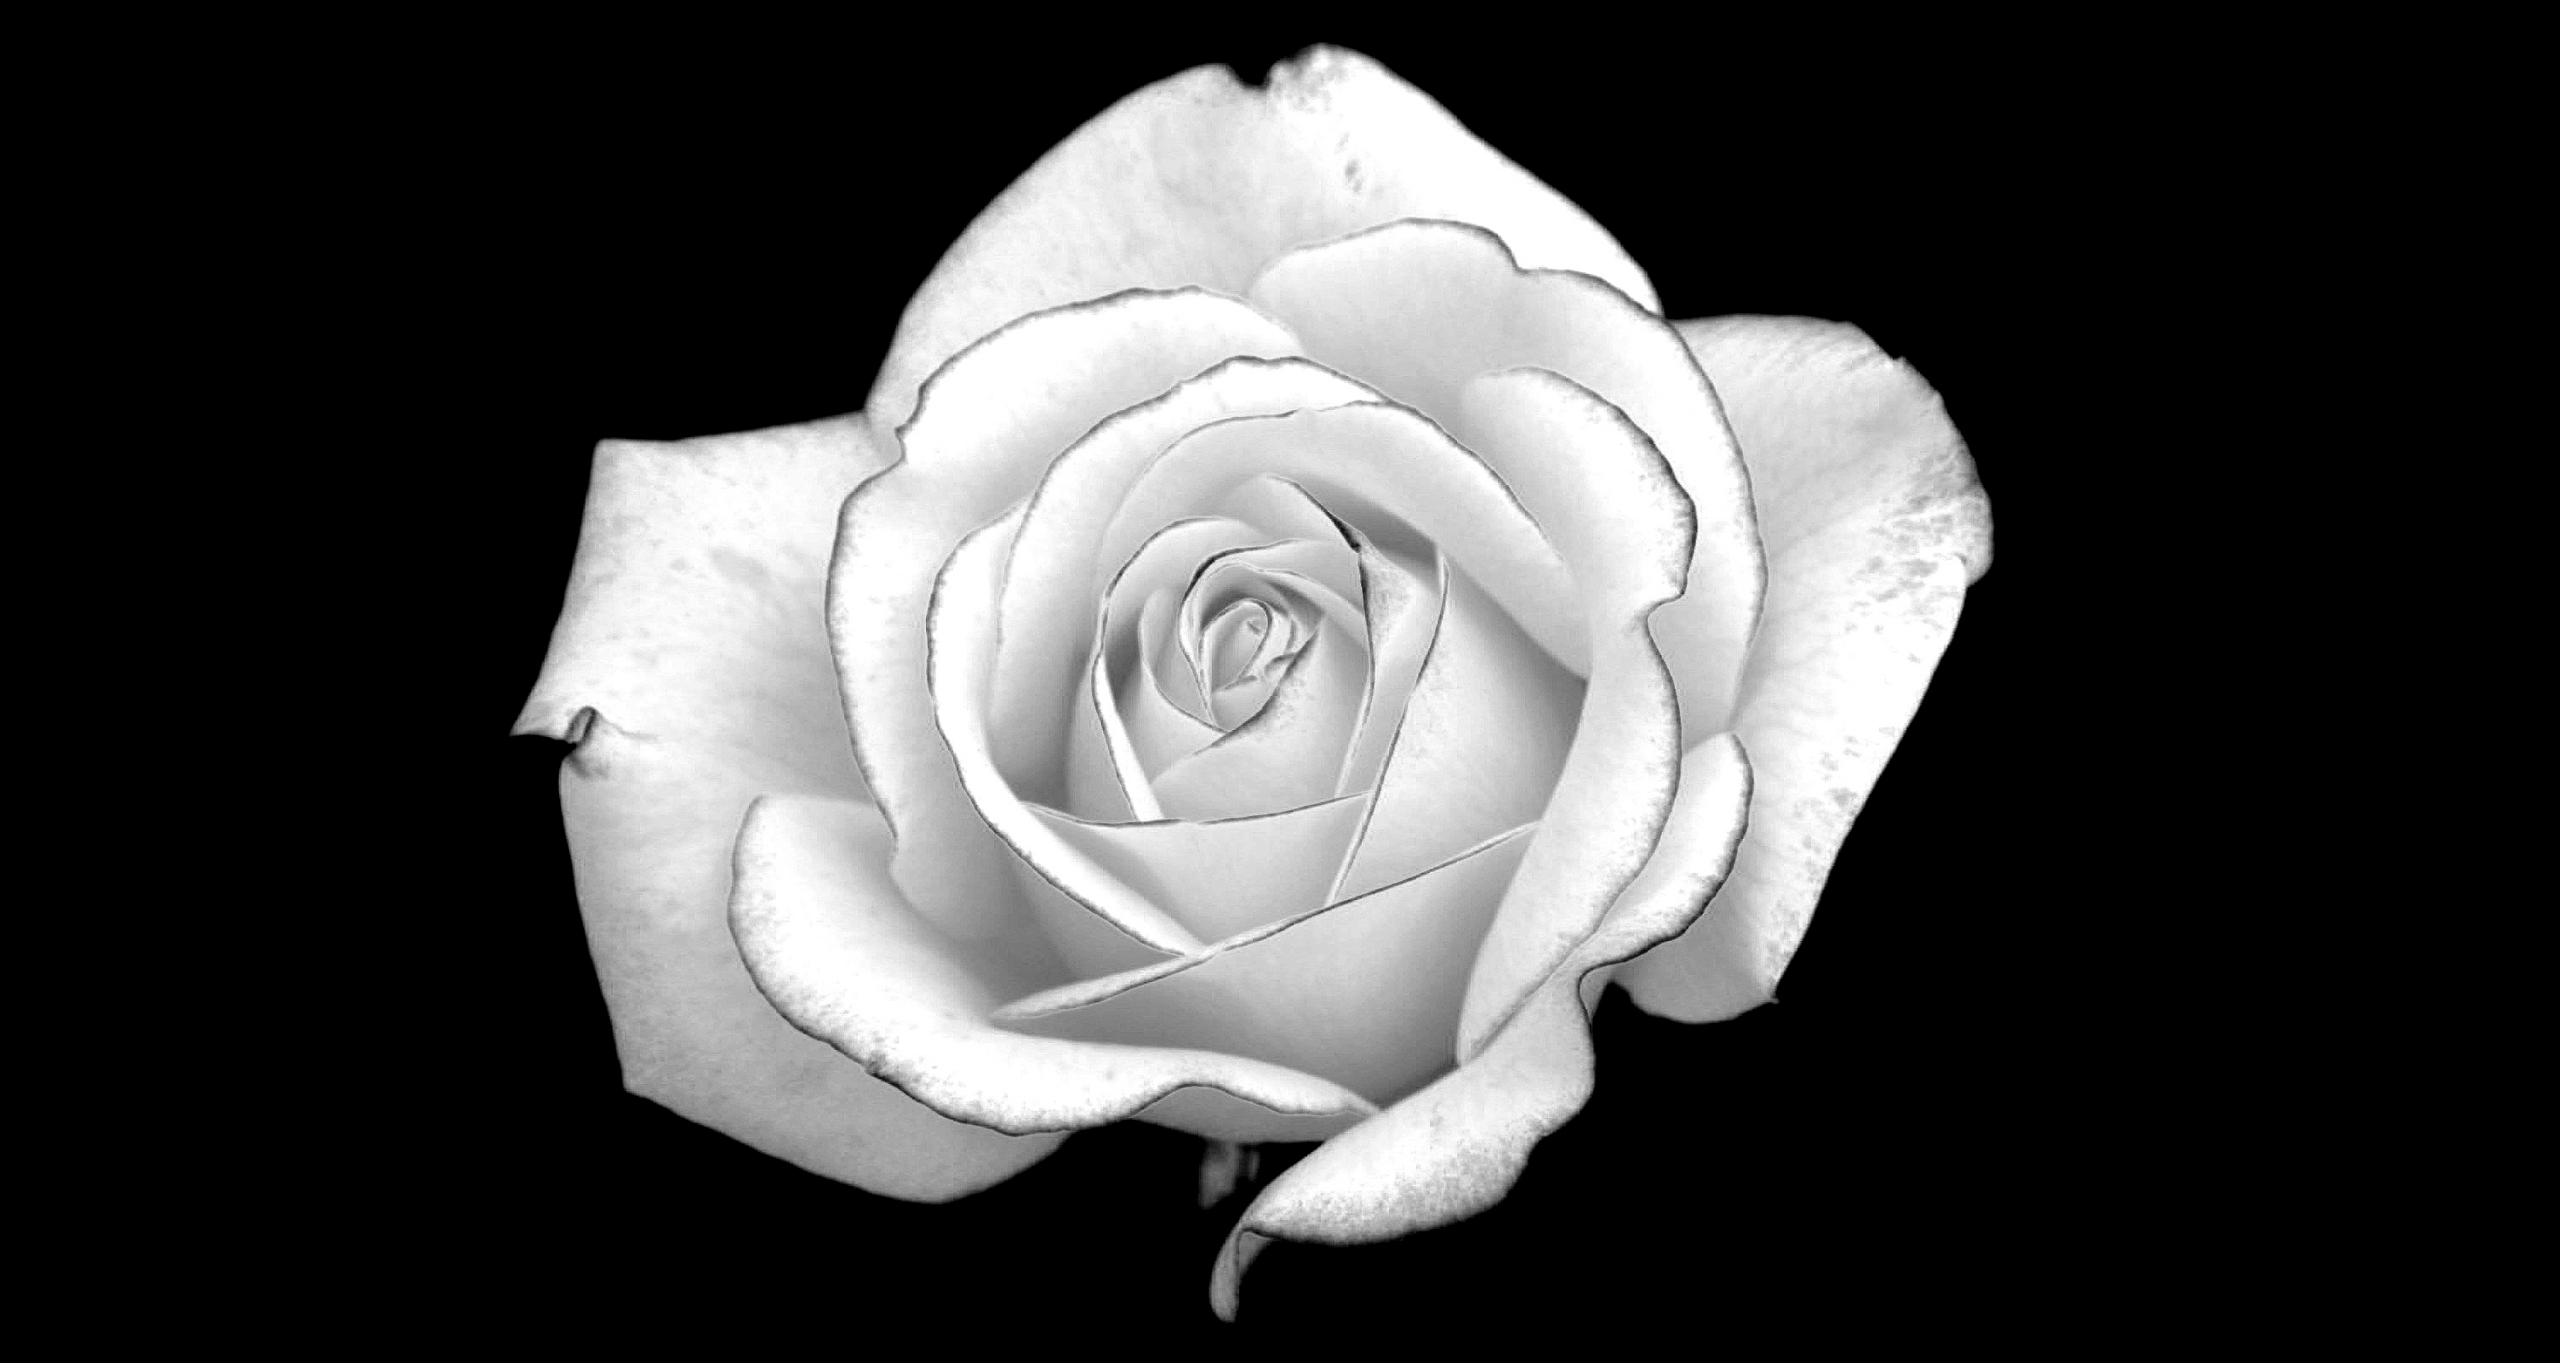 Roses Images White Mean Im Worthy Of You HD Wallpaper And